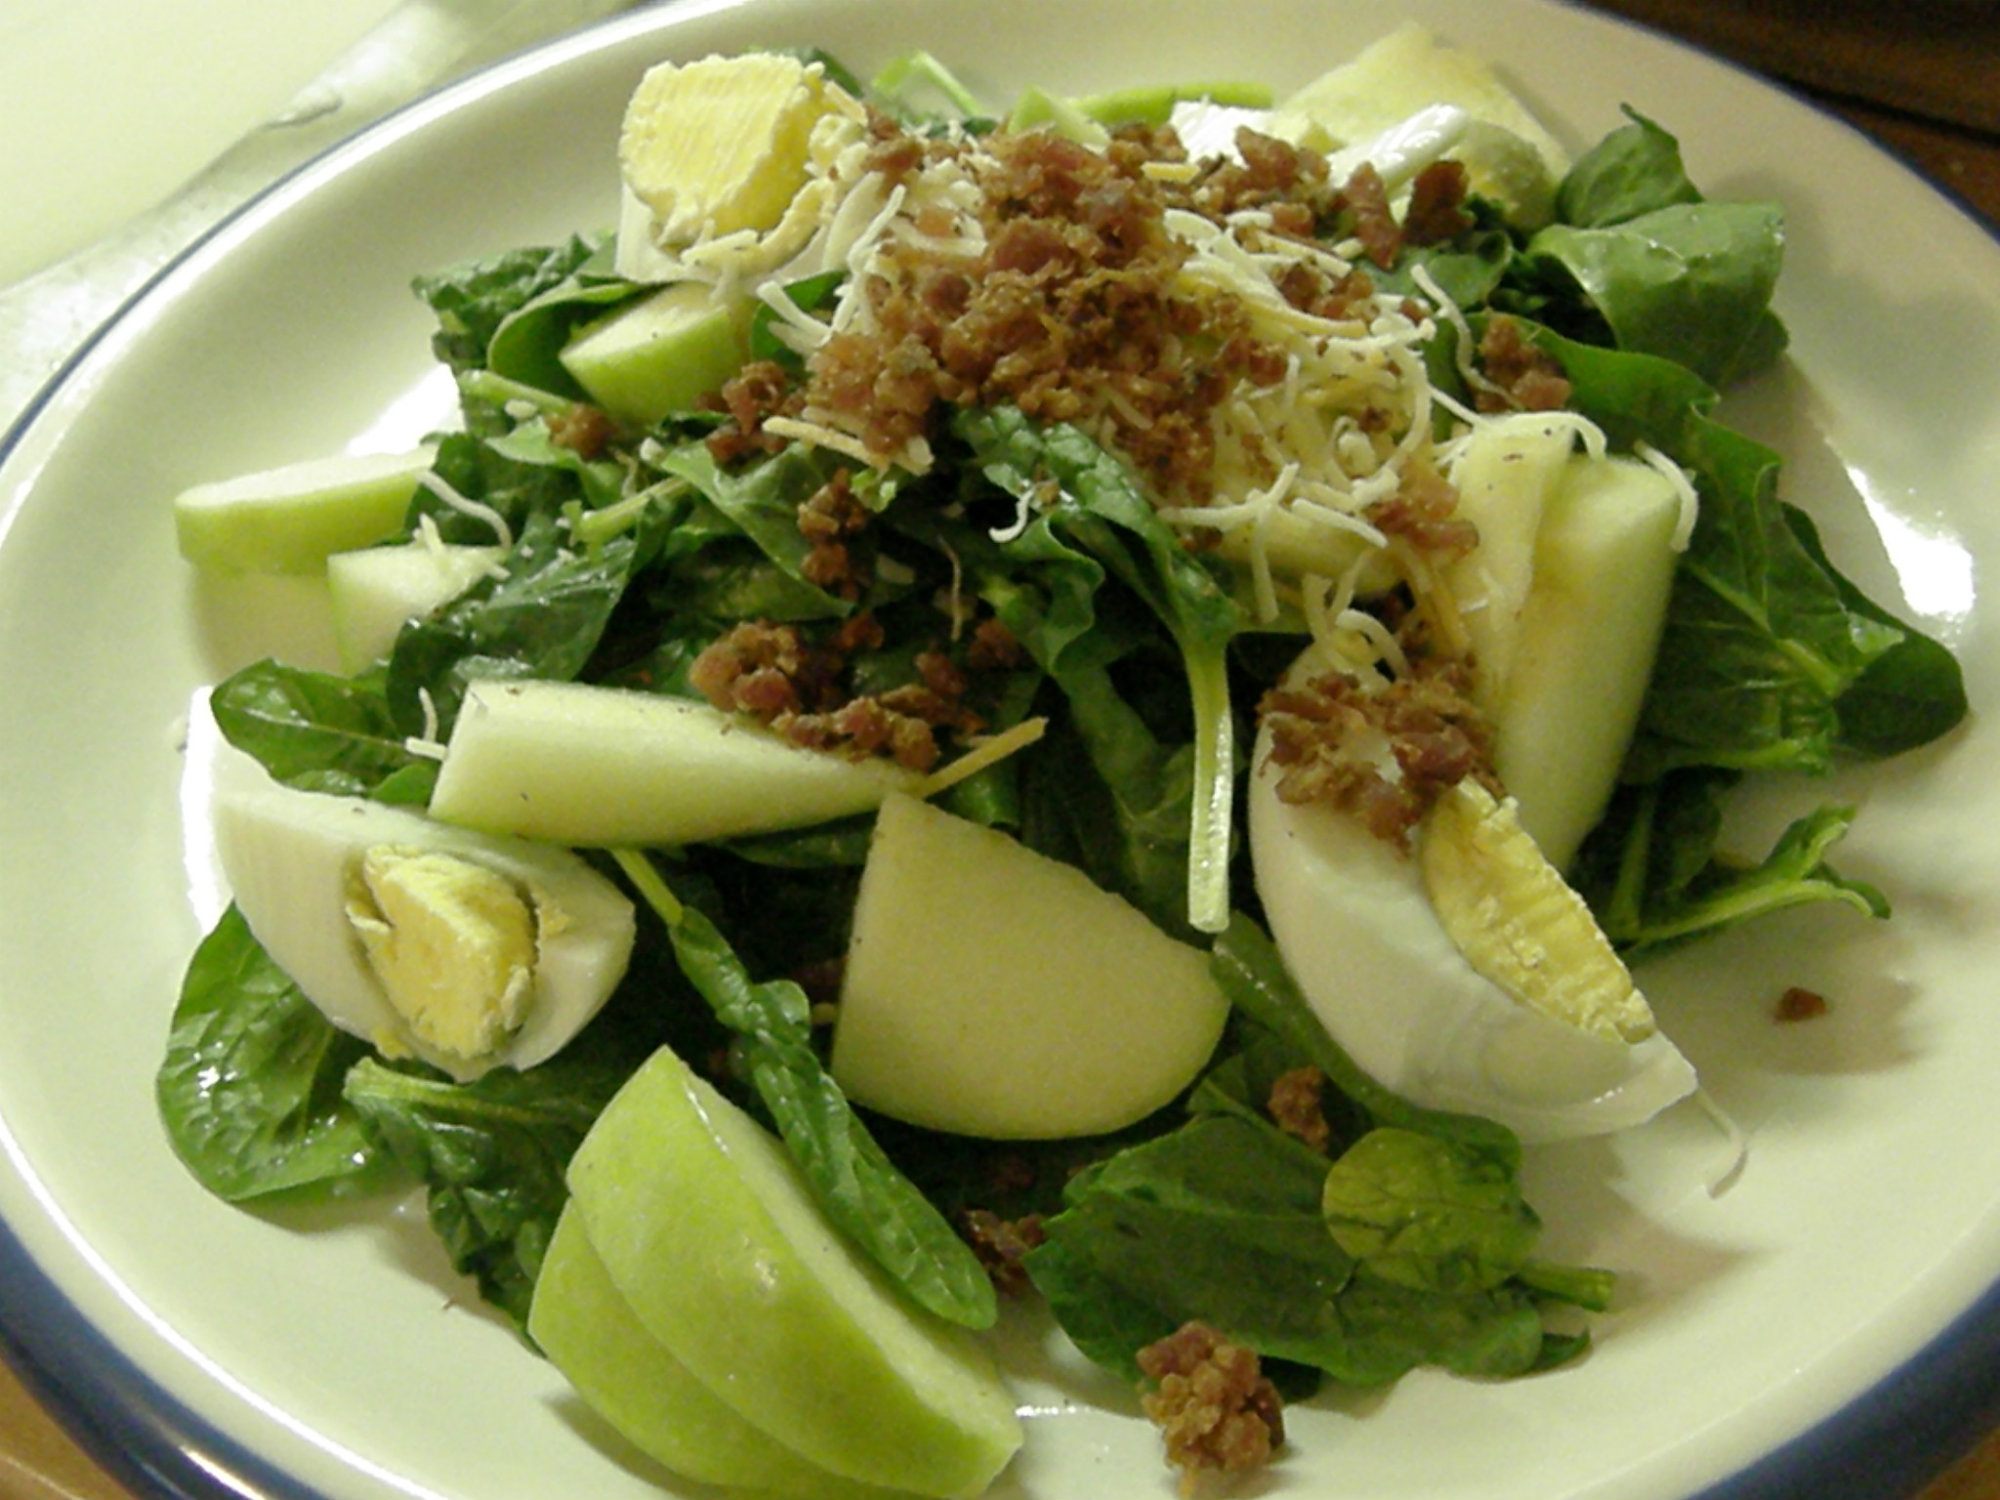 Lemon And Bacon Spinach Salad picture